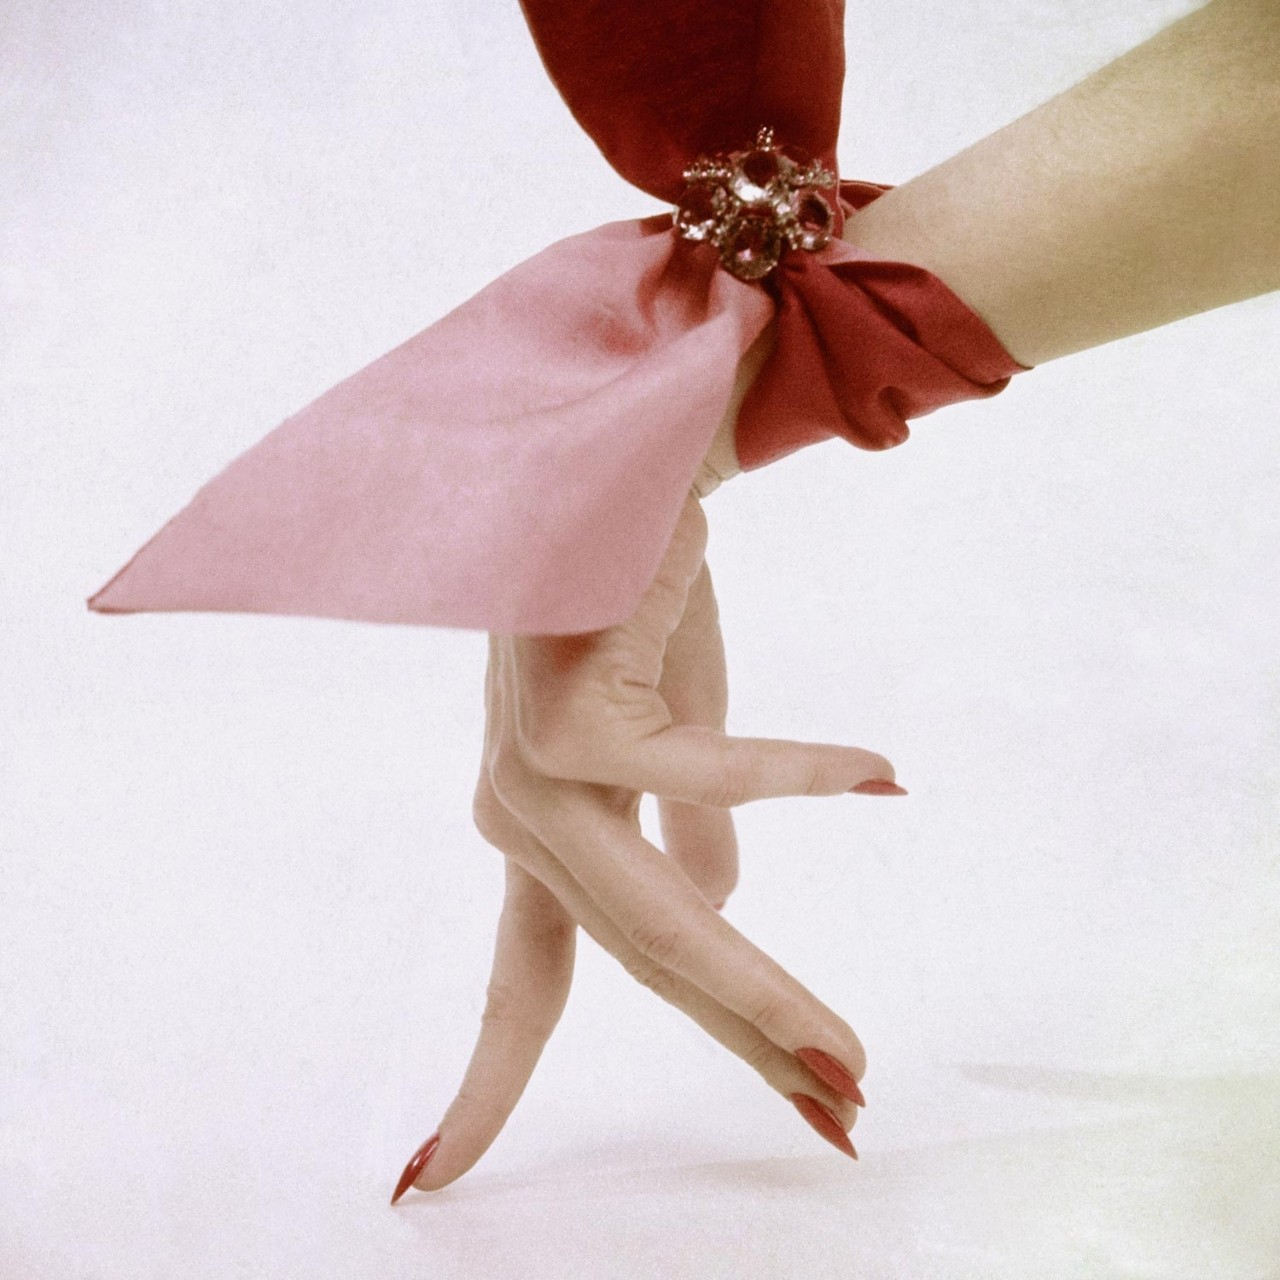 pink-wrist-scarf-photographed-by-clifford-coffin-in-1951.jpg